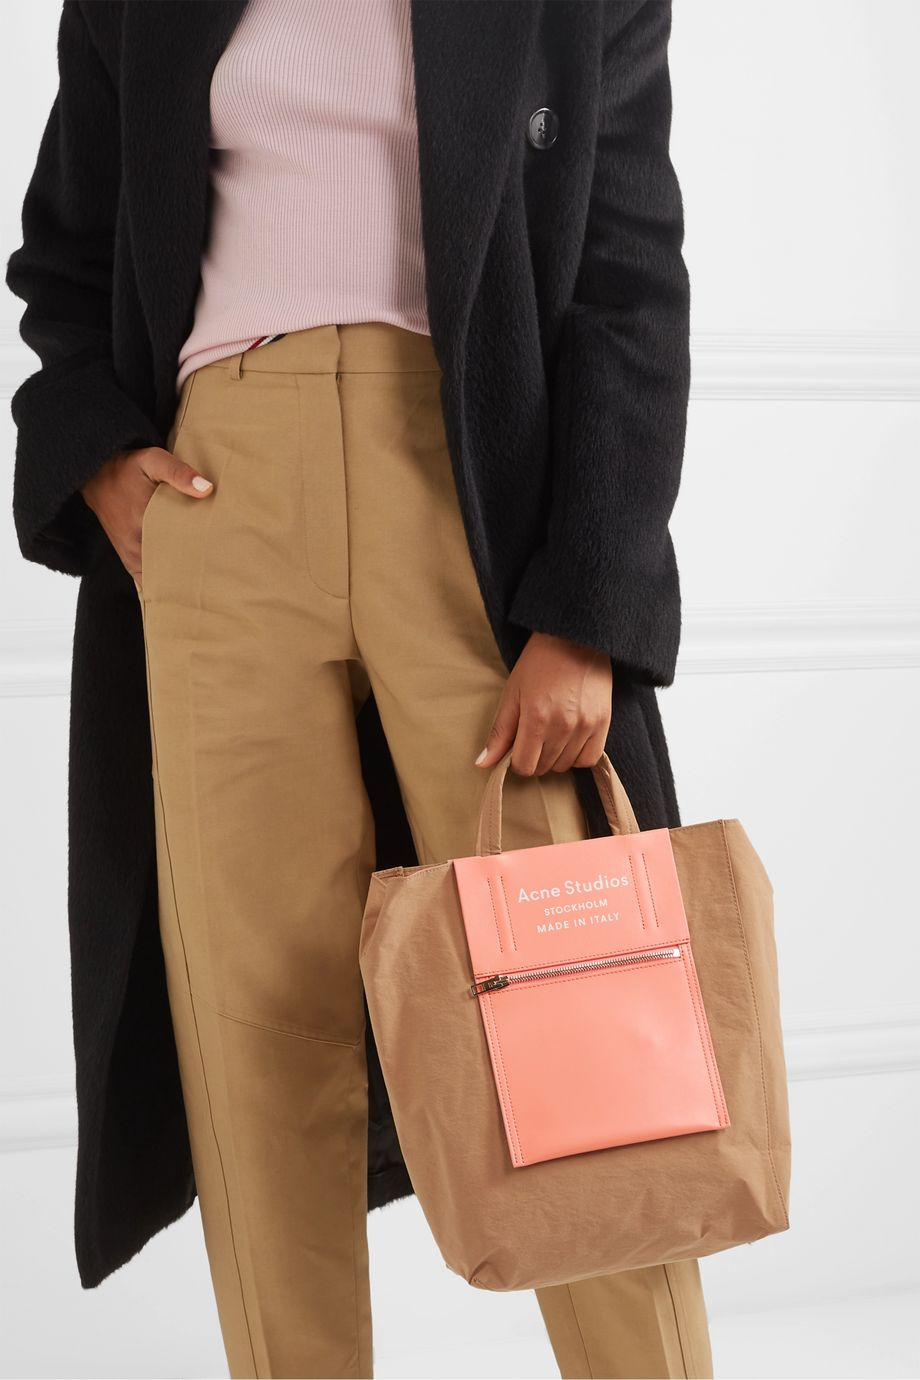 Acne Studios Canvas and leather tote